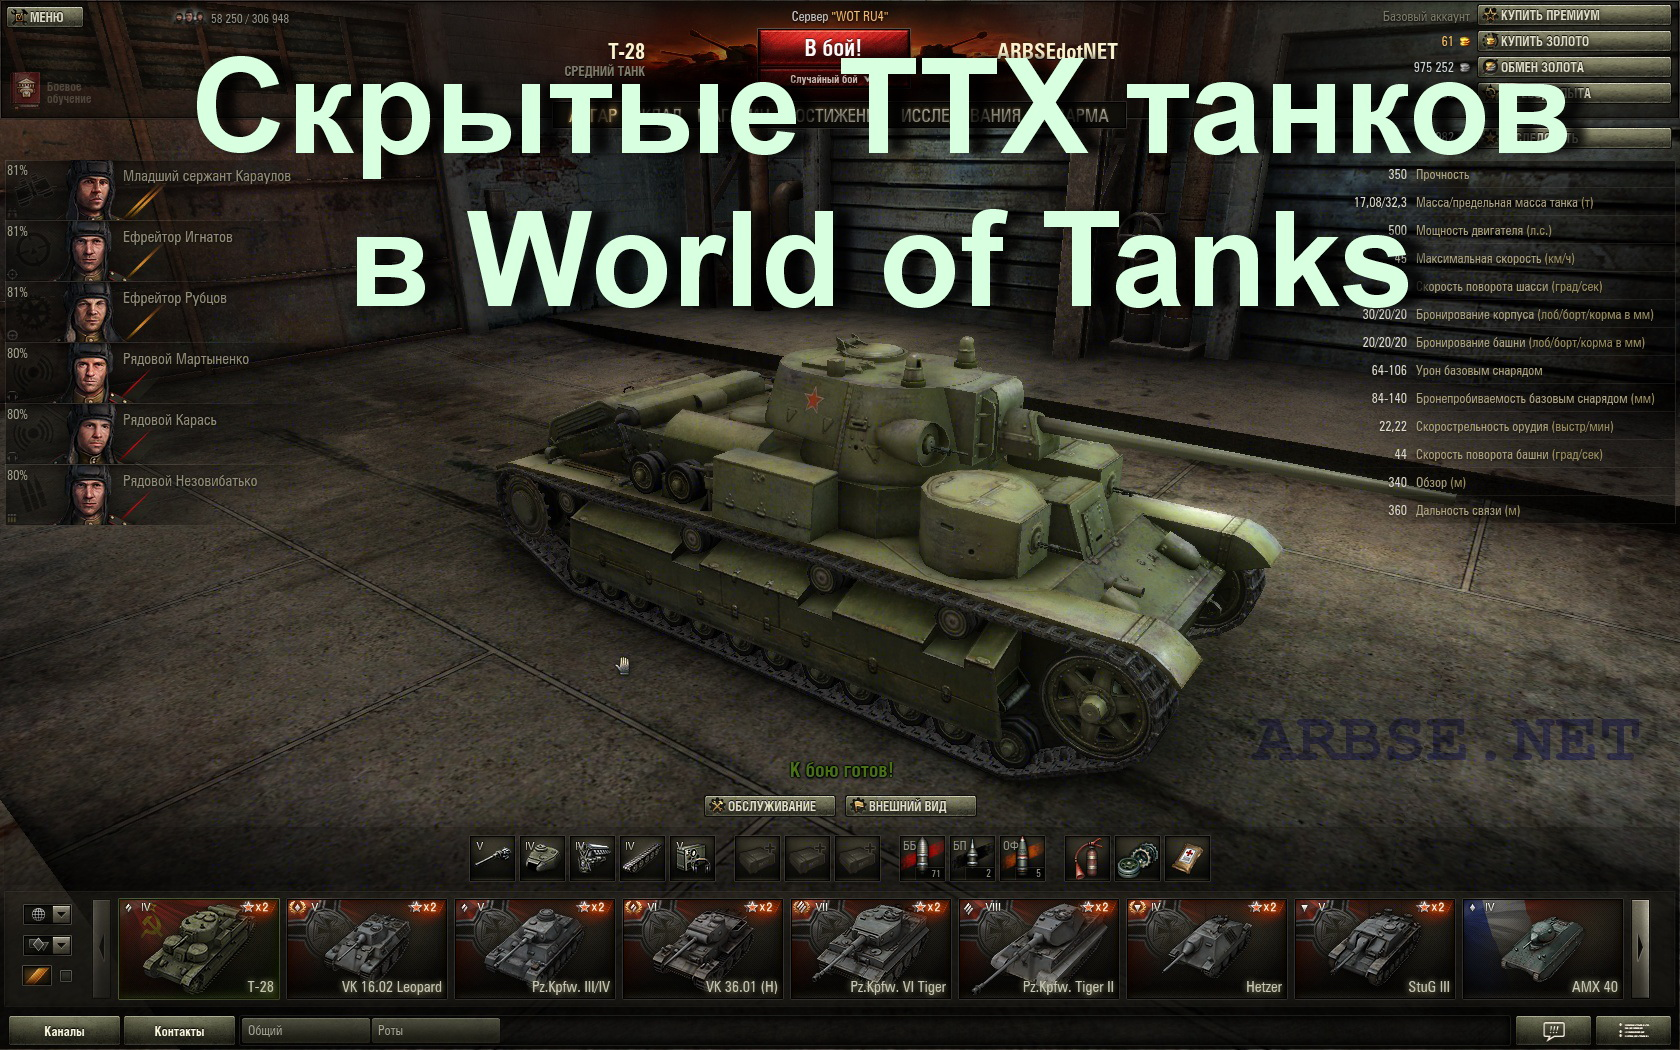 Почему не могу зайти в бой в world of tanks